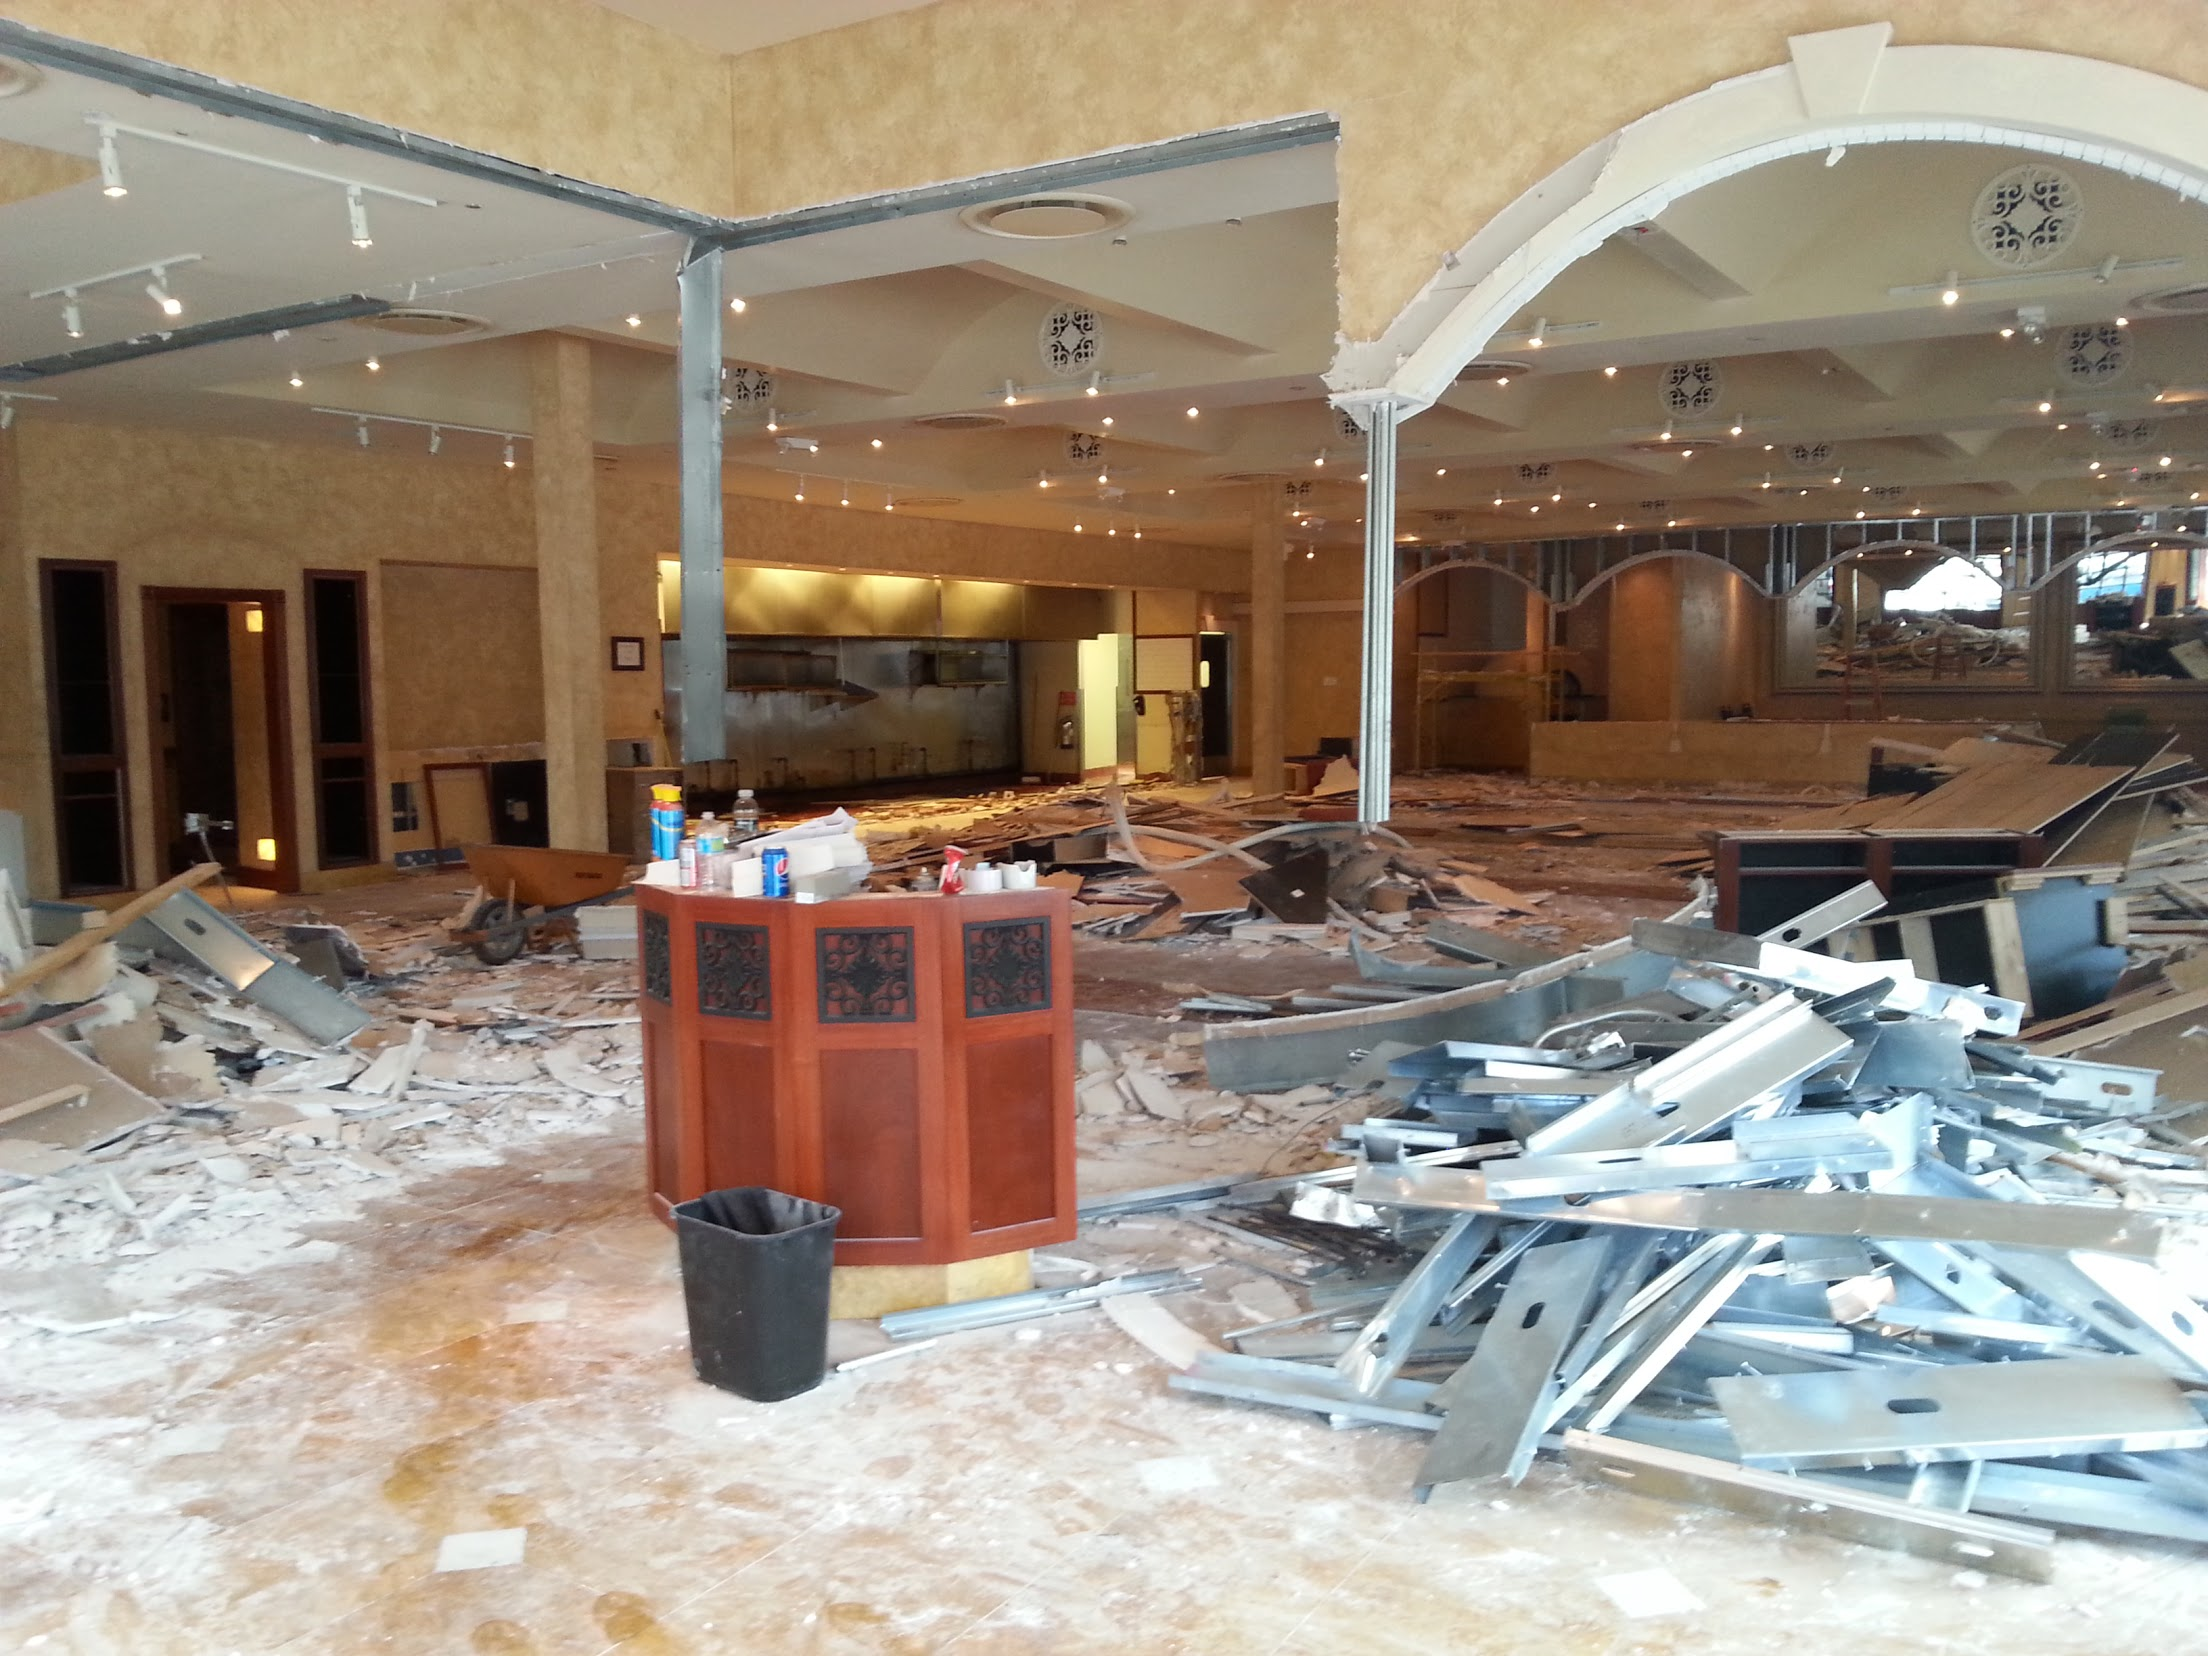 Total demolition of an upscale restaurant interior.